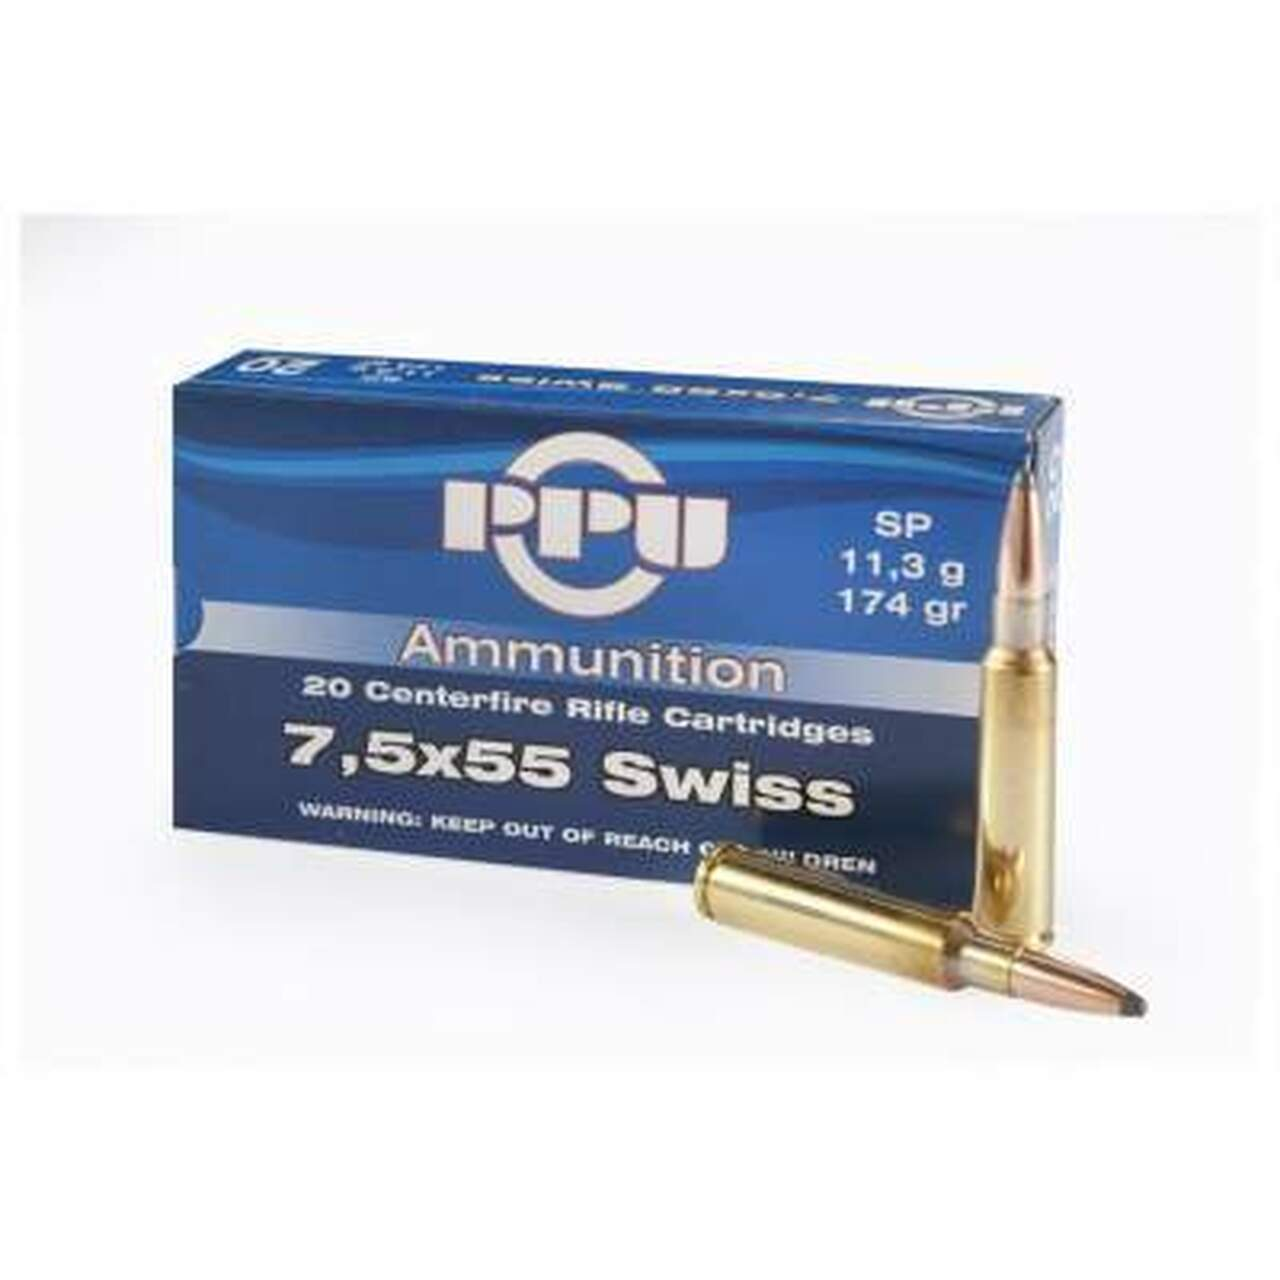 7.5x55mm Swiss Ammo